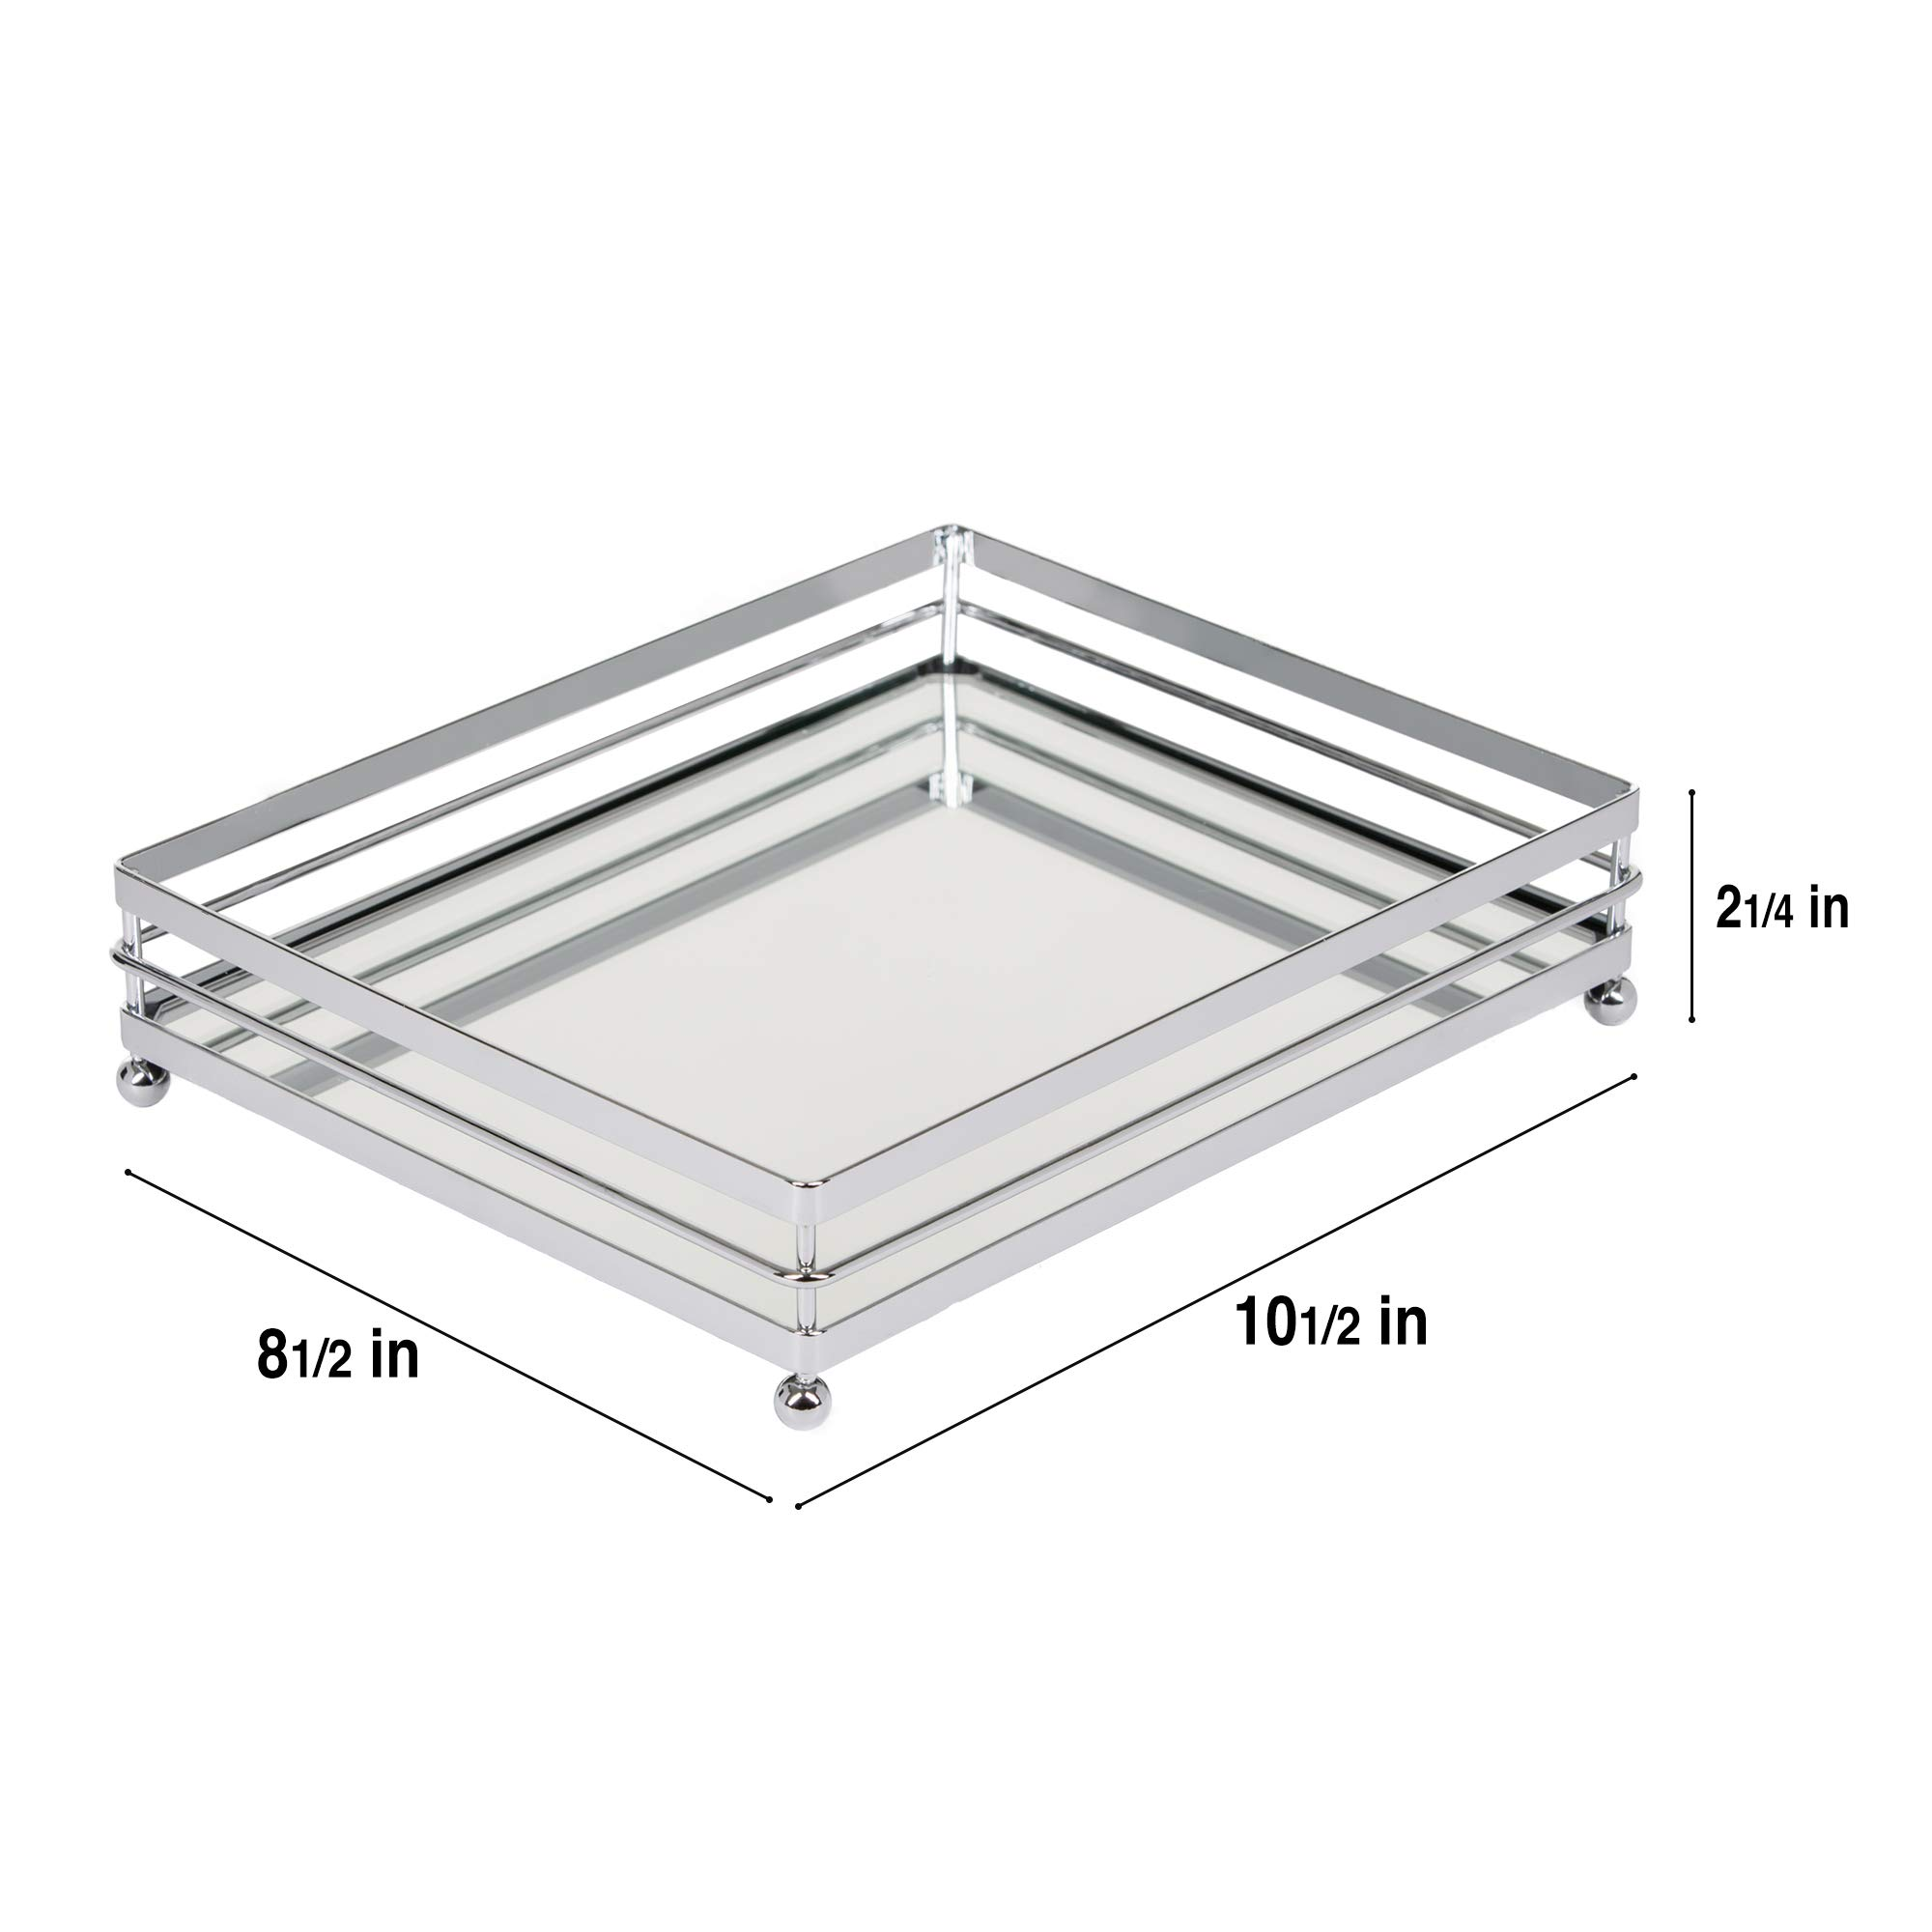 Vnesse Decorative Mirror Tray Mirror Perfume Glass Vanity Jewelry Serving Tray Silver Classic Accessories for Dresser & Bathroom 10.6'' x 8.6'' by Vnesse (Image #2)